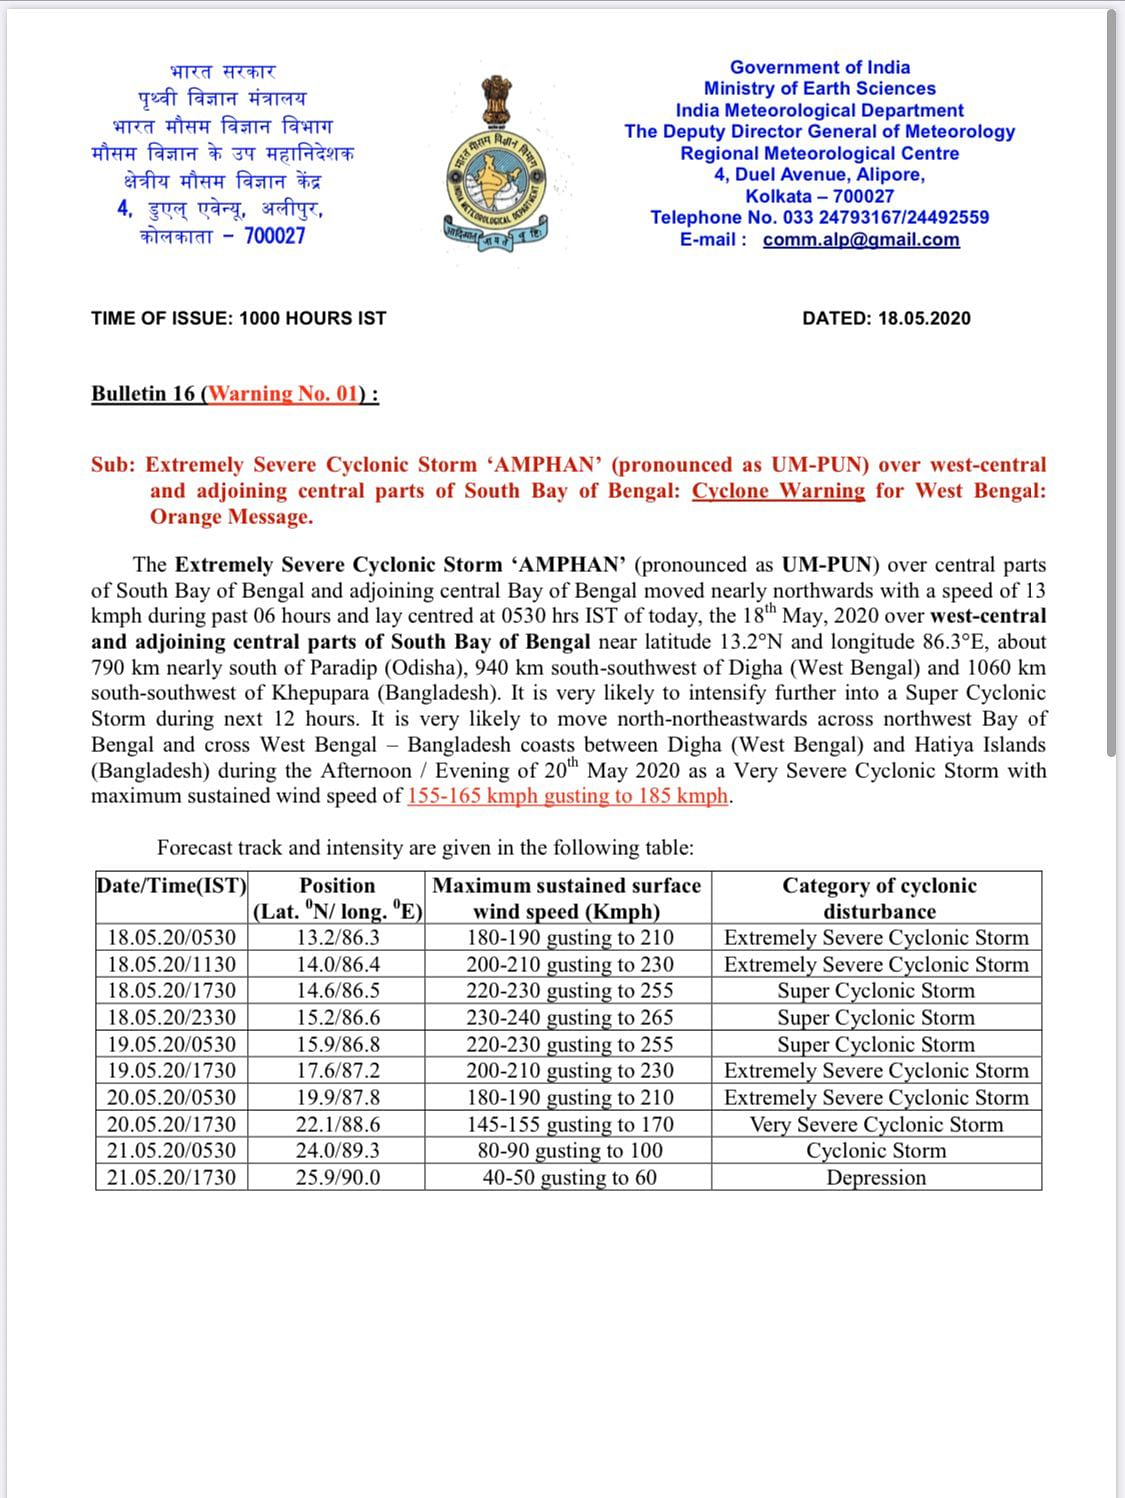 Warning issued by the Indian Meteorological Department